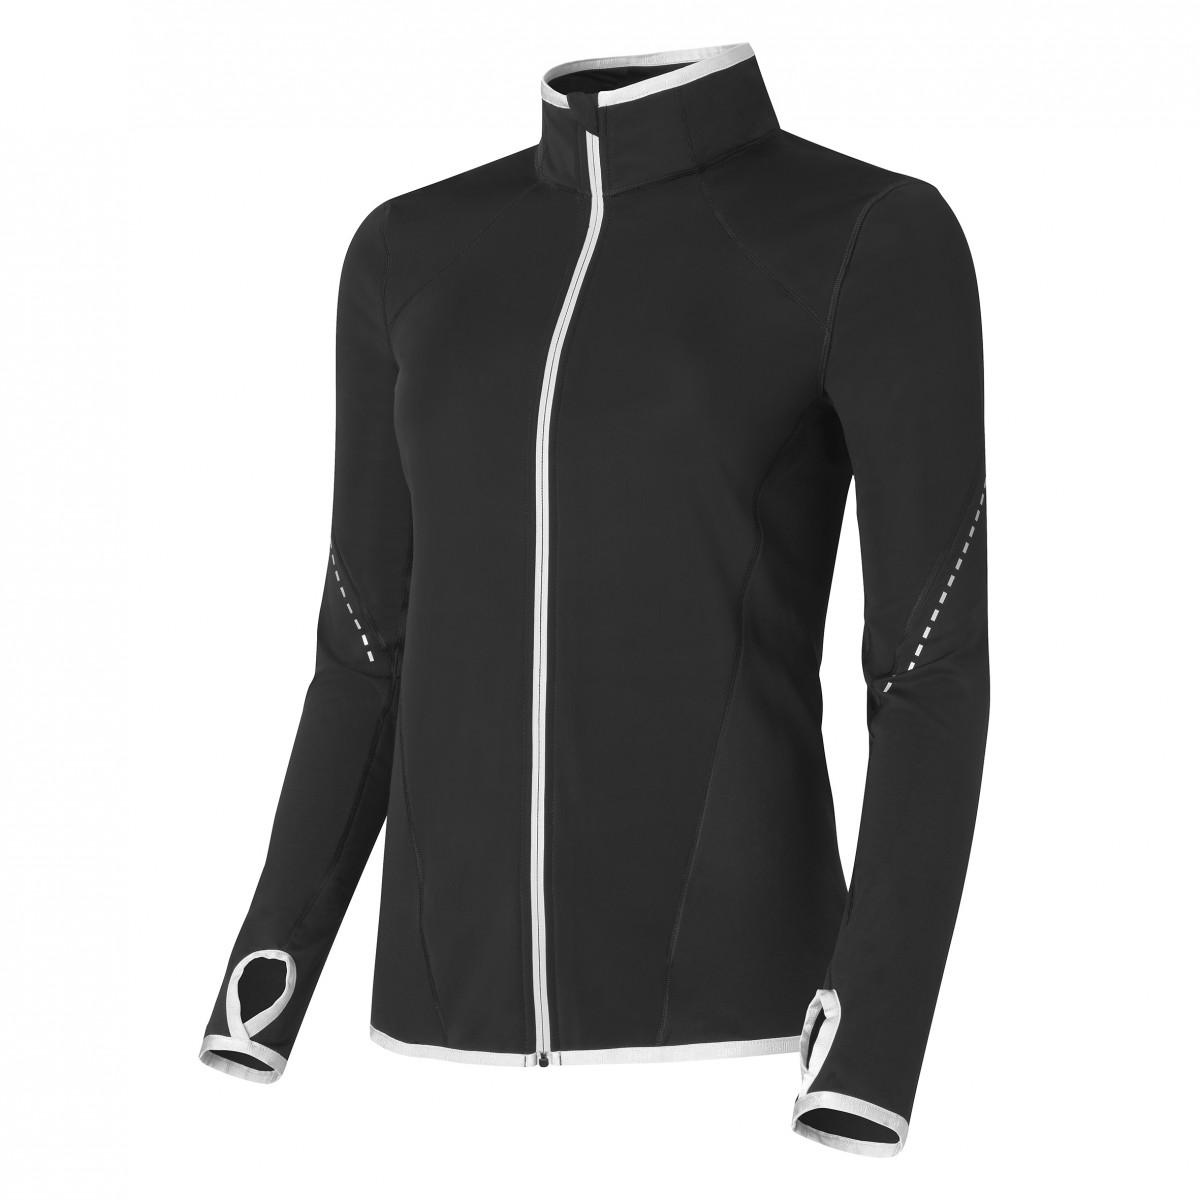 Casall Windtherm Jacket